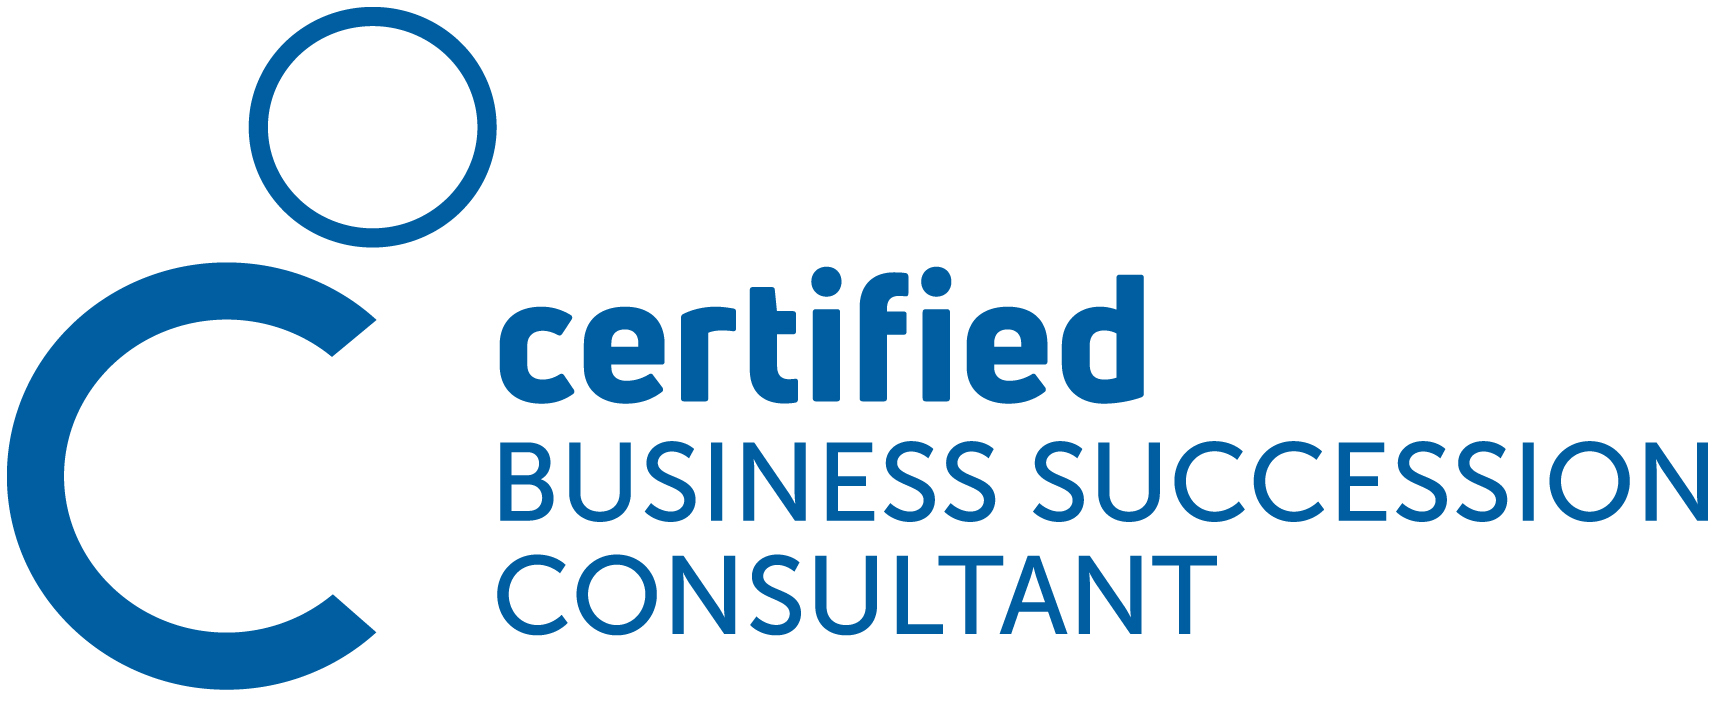 Produktlogo Zertifizierung Certified Business Succession Consultant